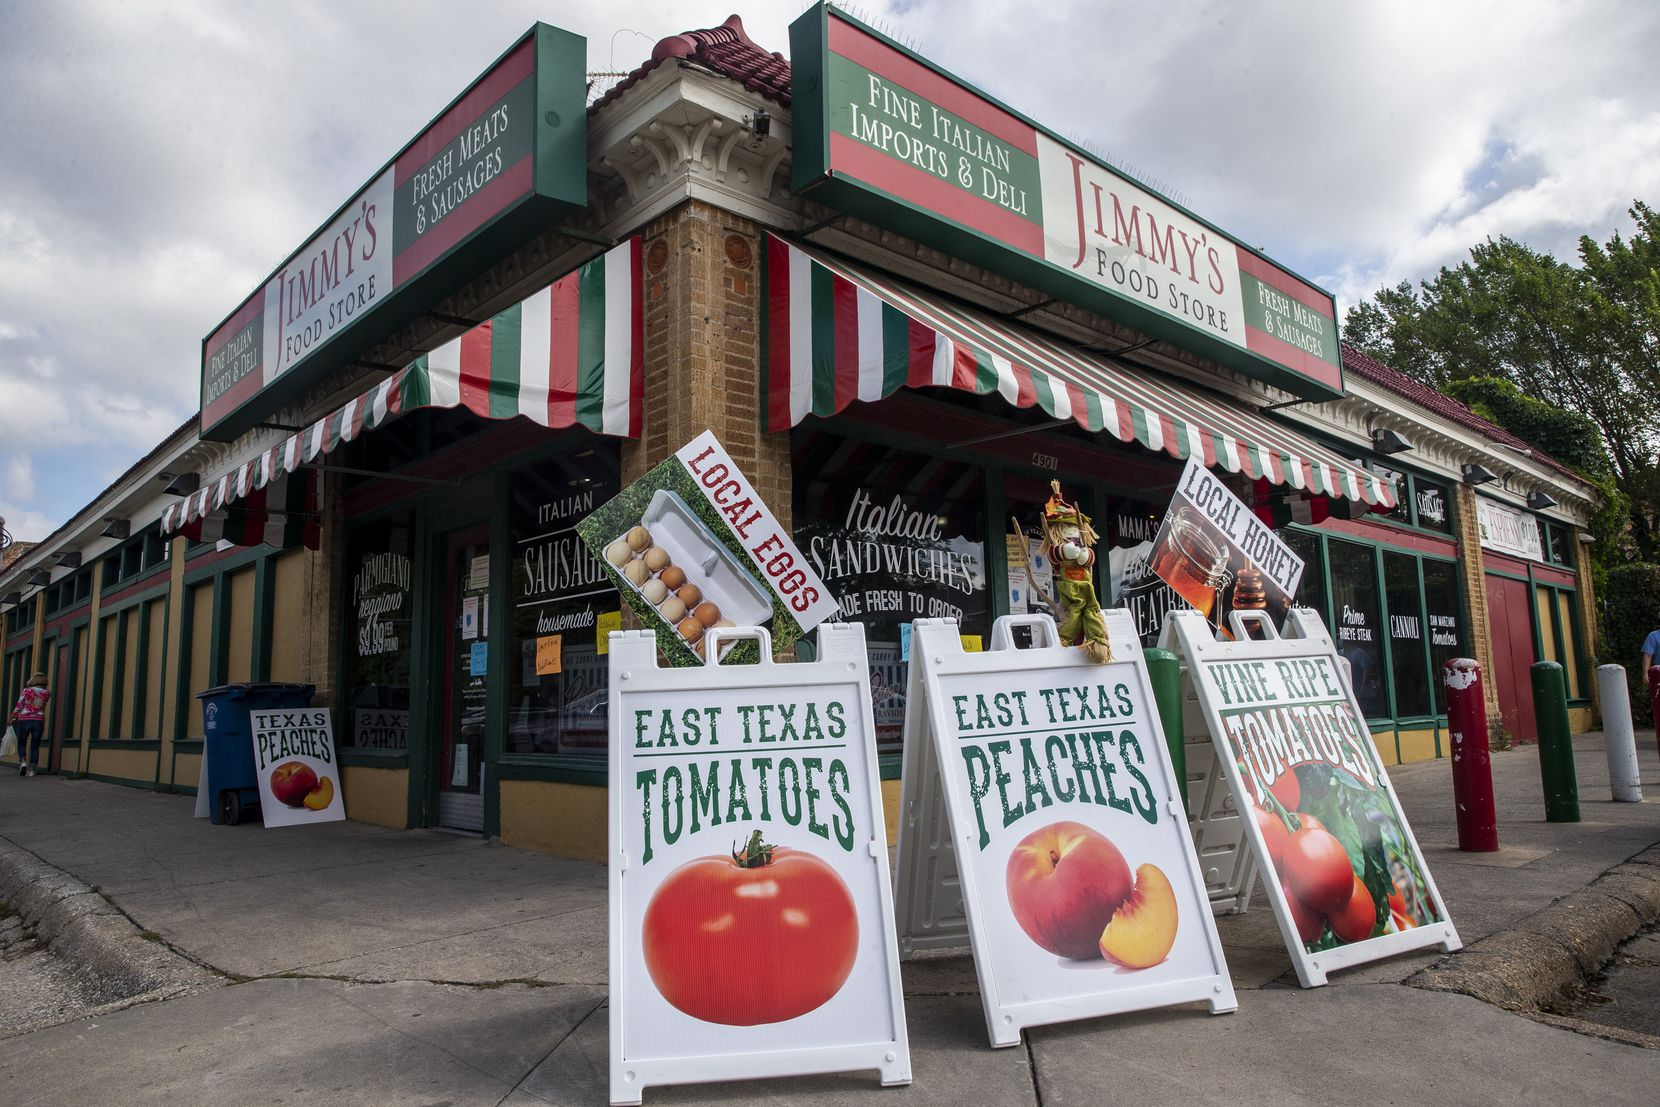 Jimmy's Food Store is located on Bryan Street in Dallas.